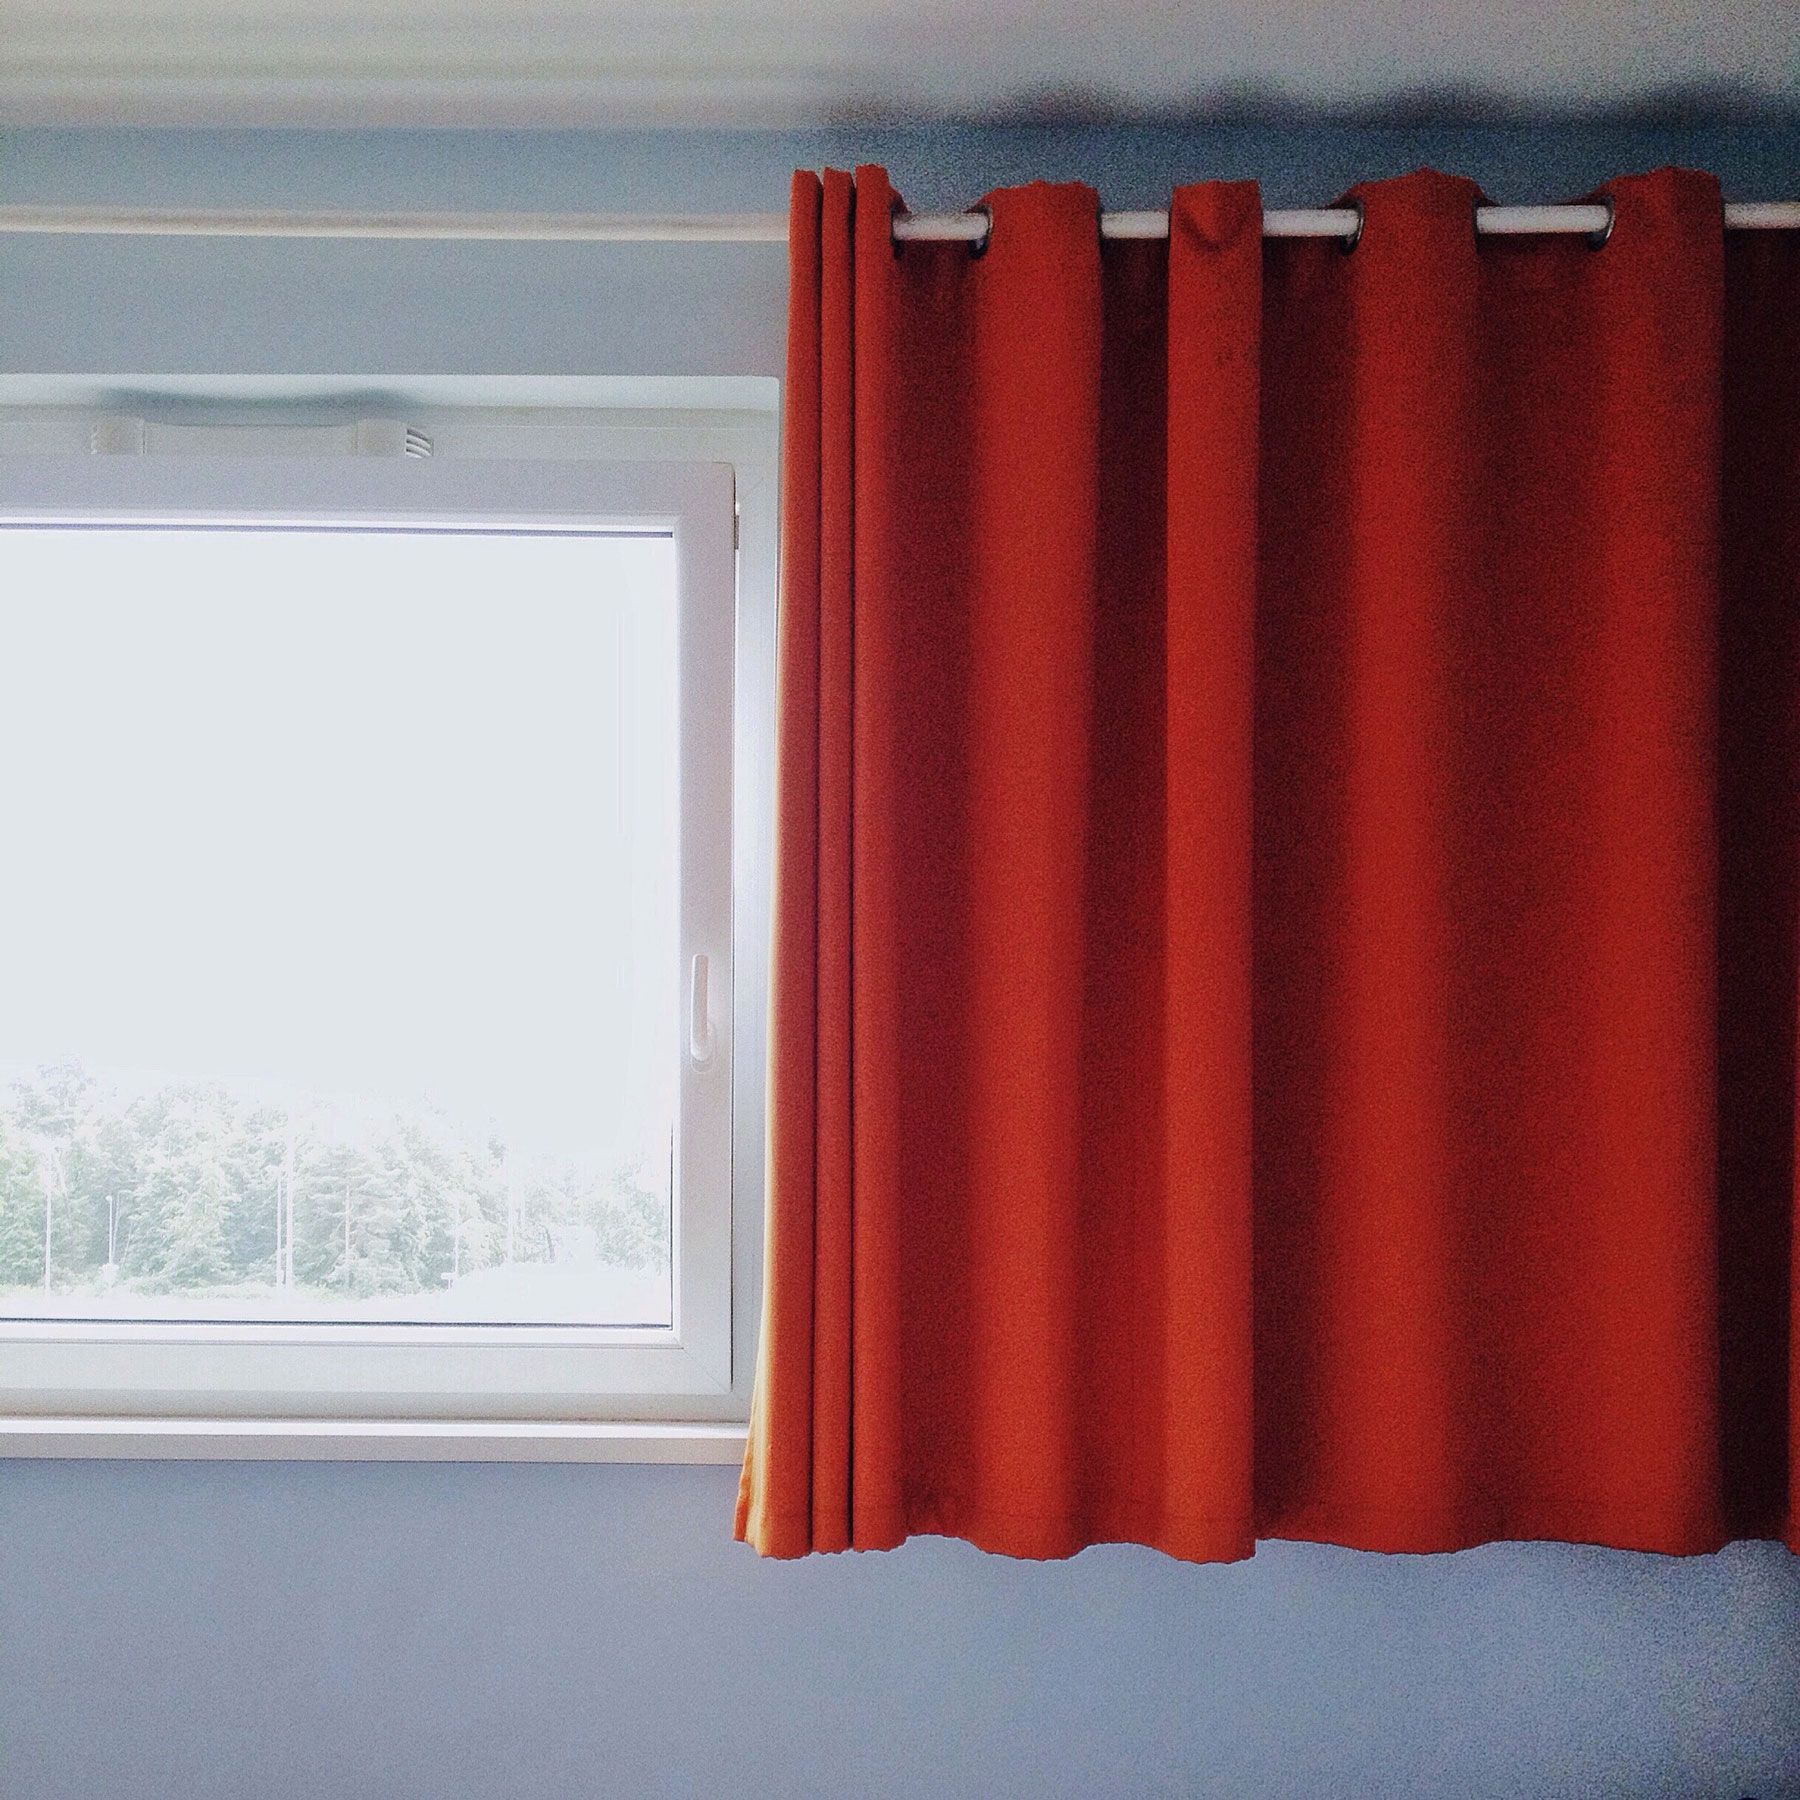 Curtains and Window Treatments Guide - Curtain header with rings or grommets